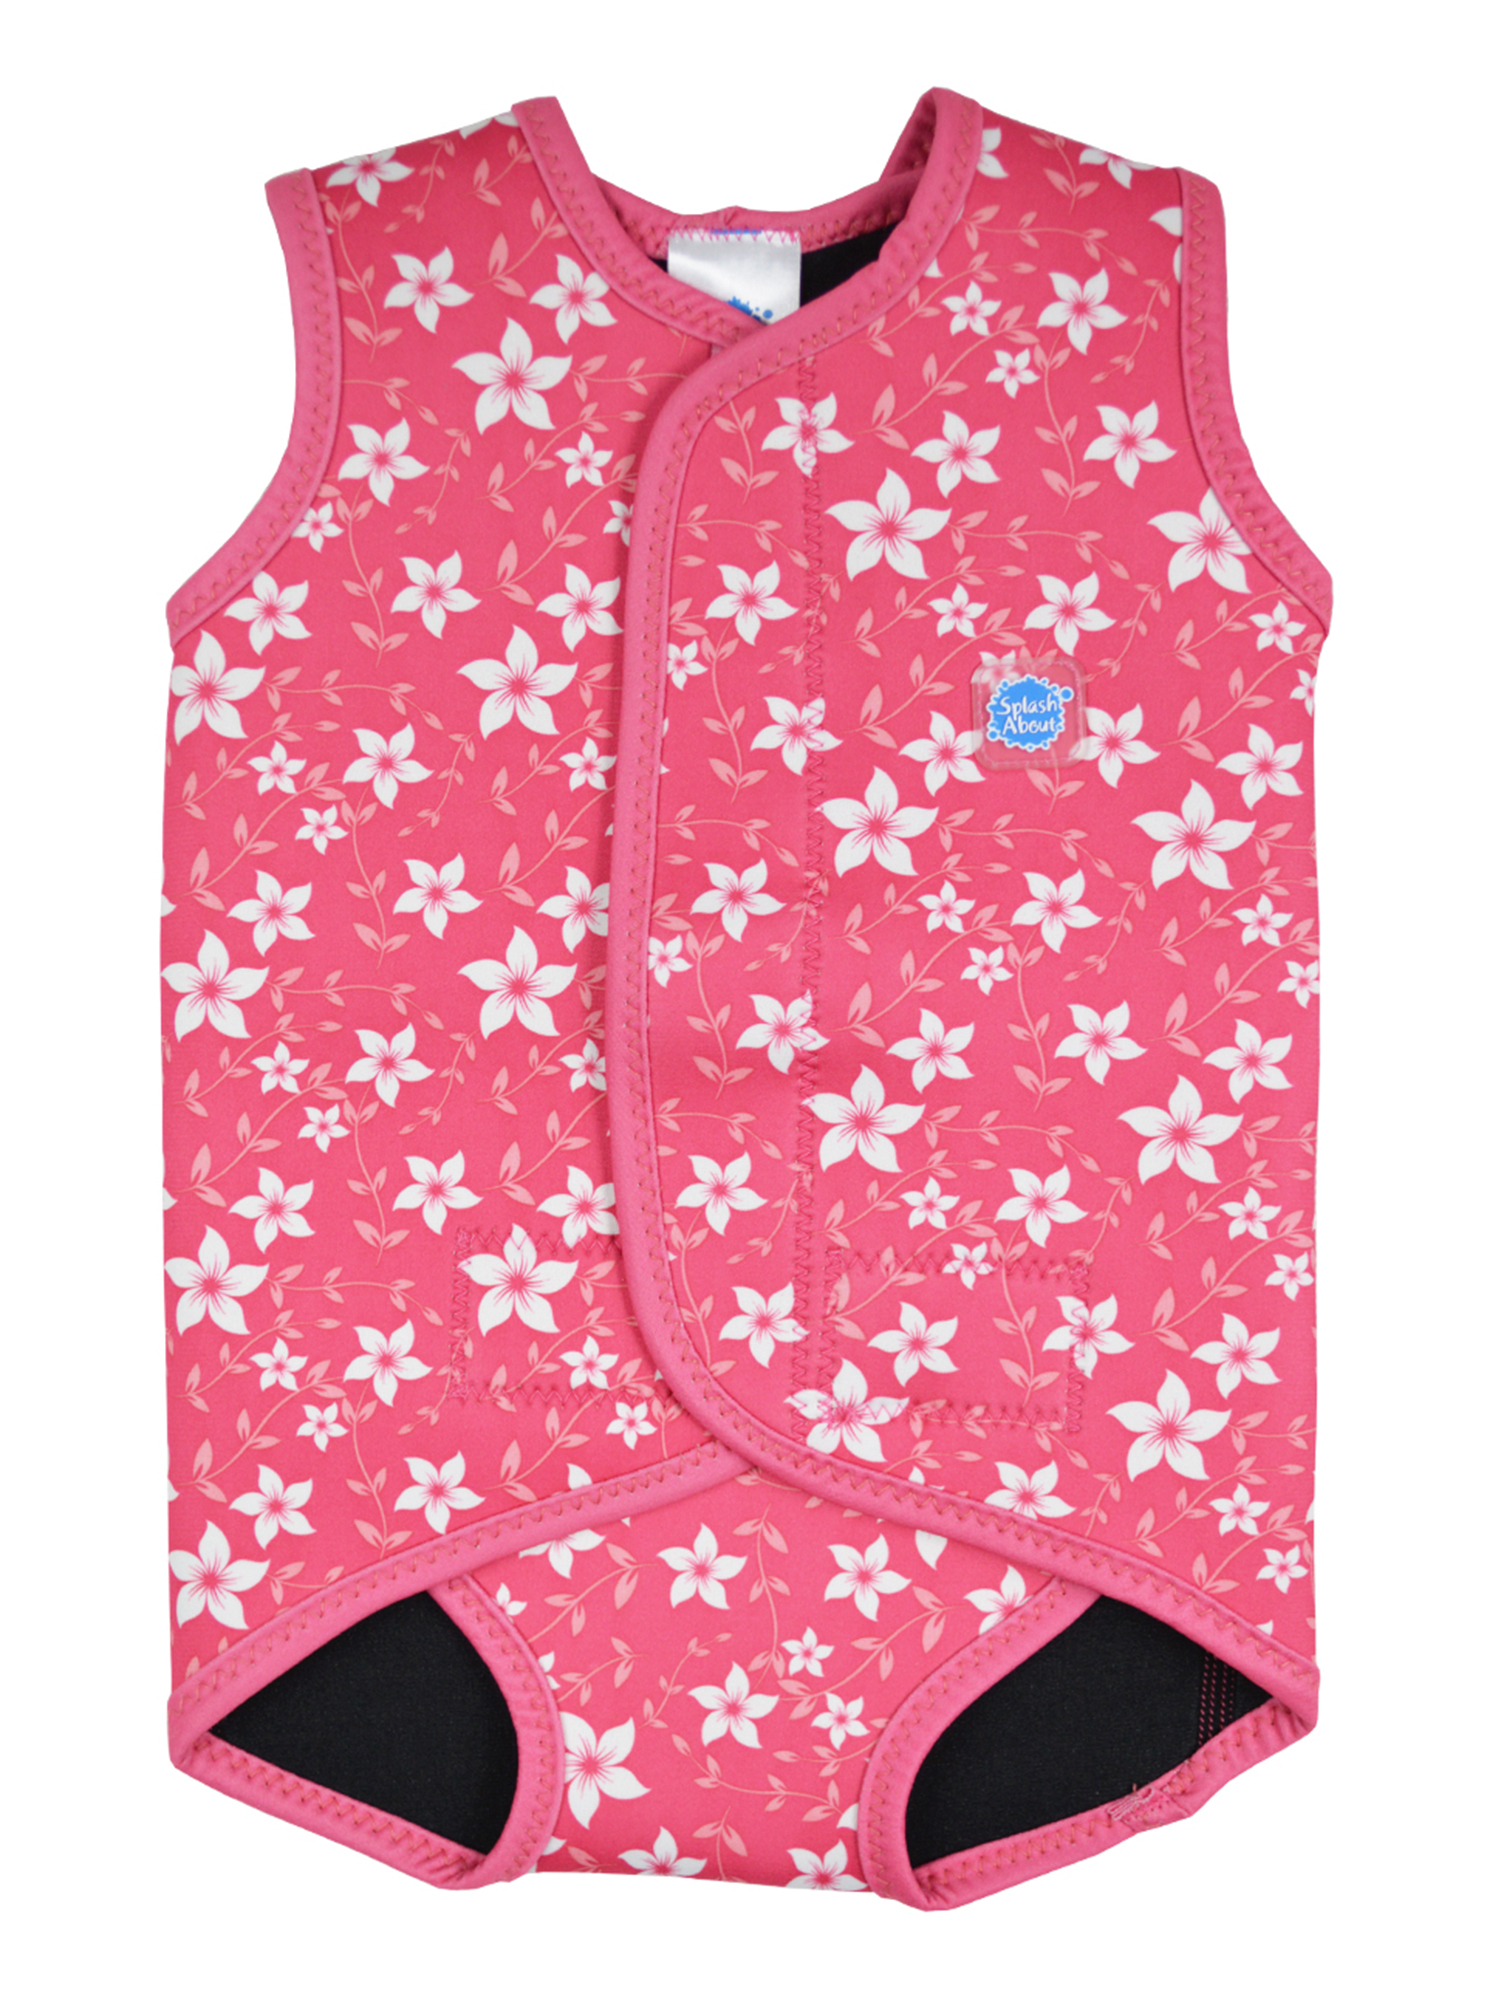 Under The Sea 18-30 Months Splash About Baby Wrap Wetsuit